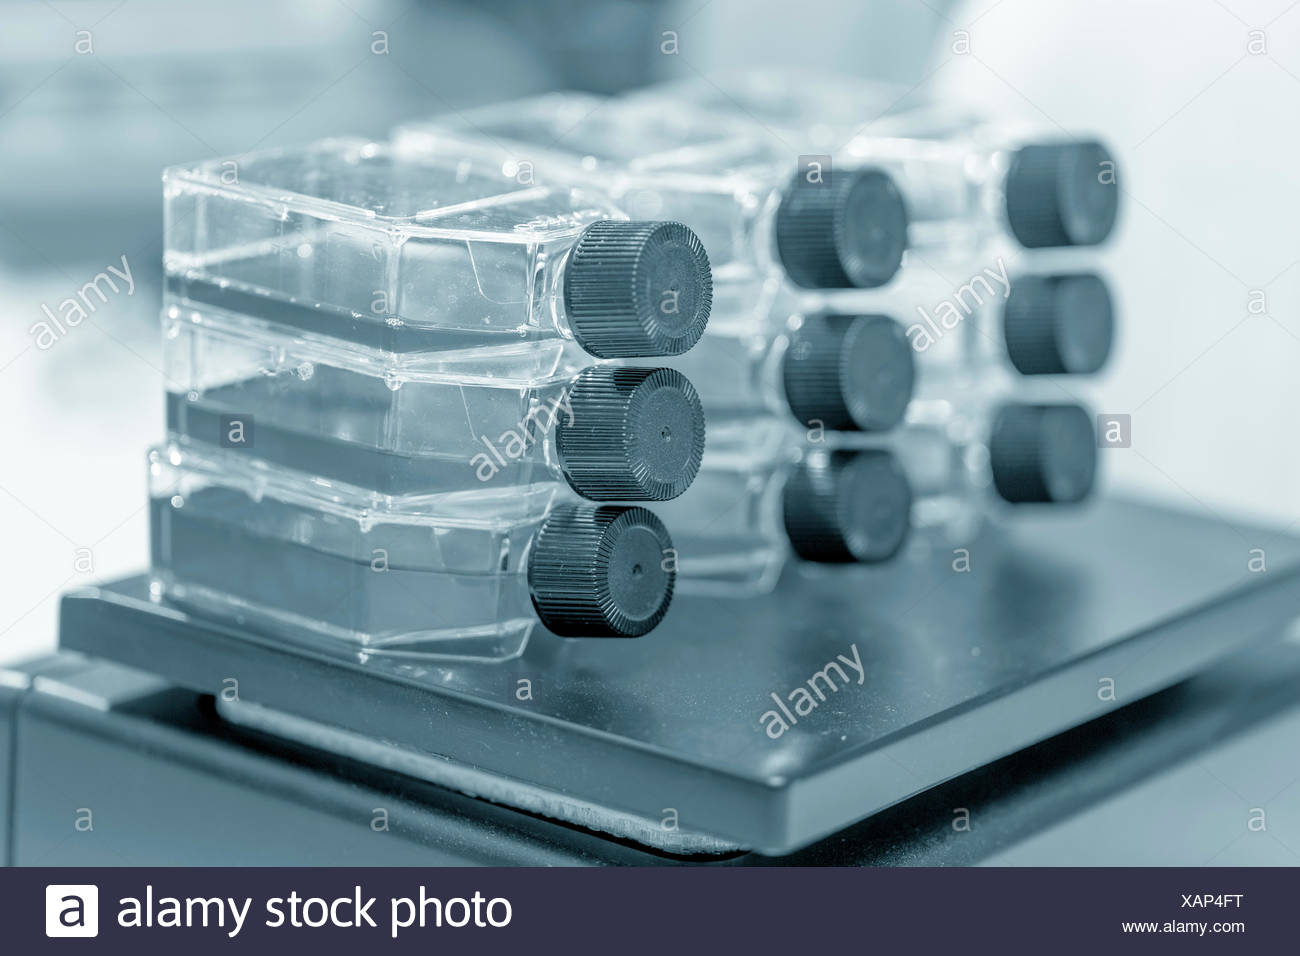 Microbiological flasks, close up. - Stock Image